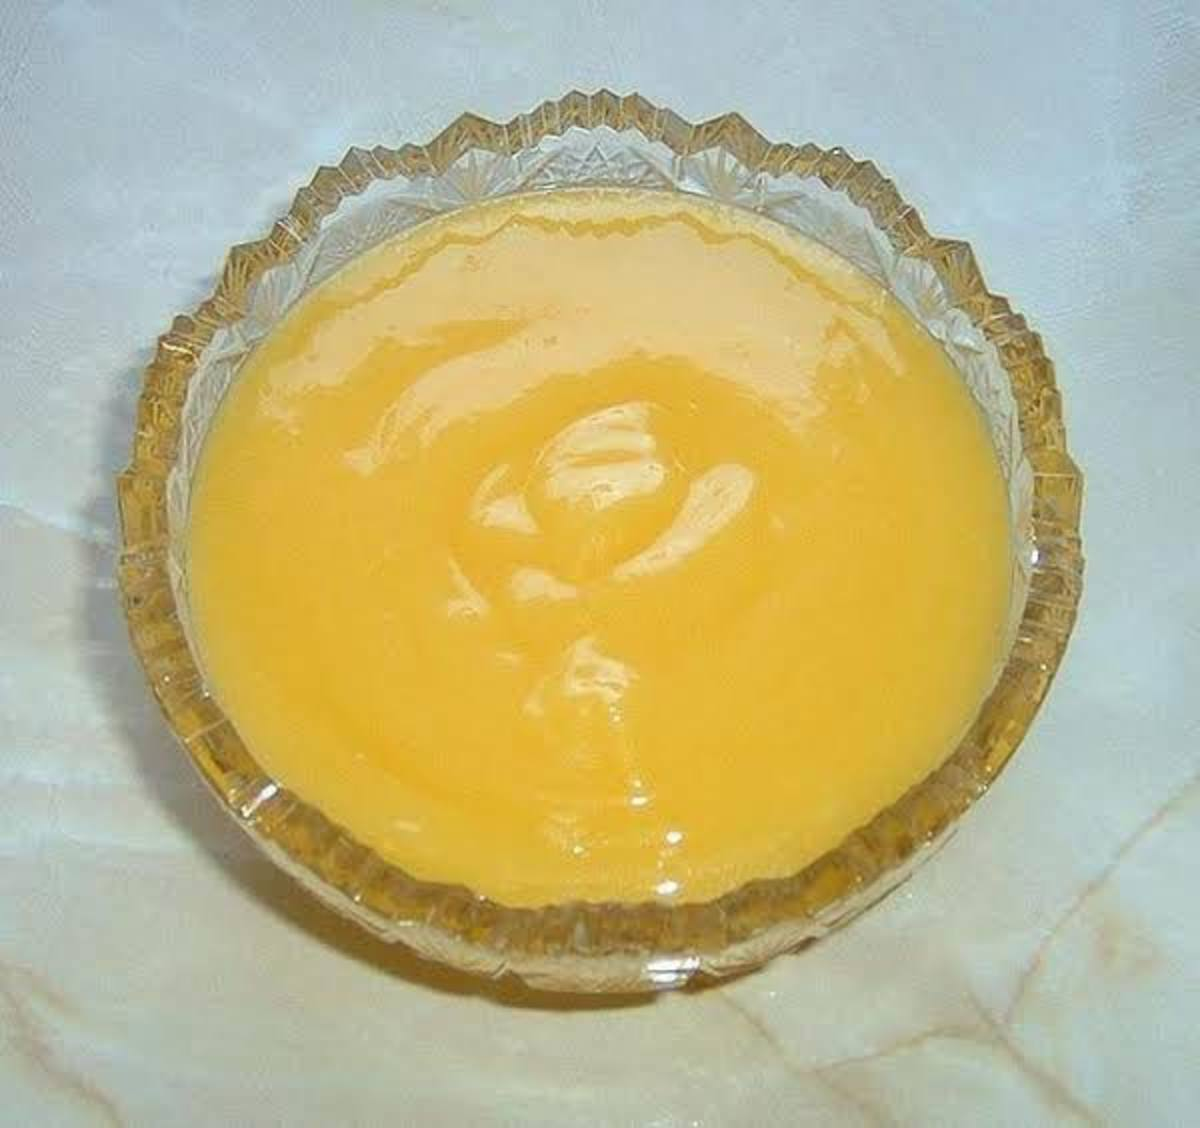 cooked lemon filling is ready to pour into prepared pie crust